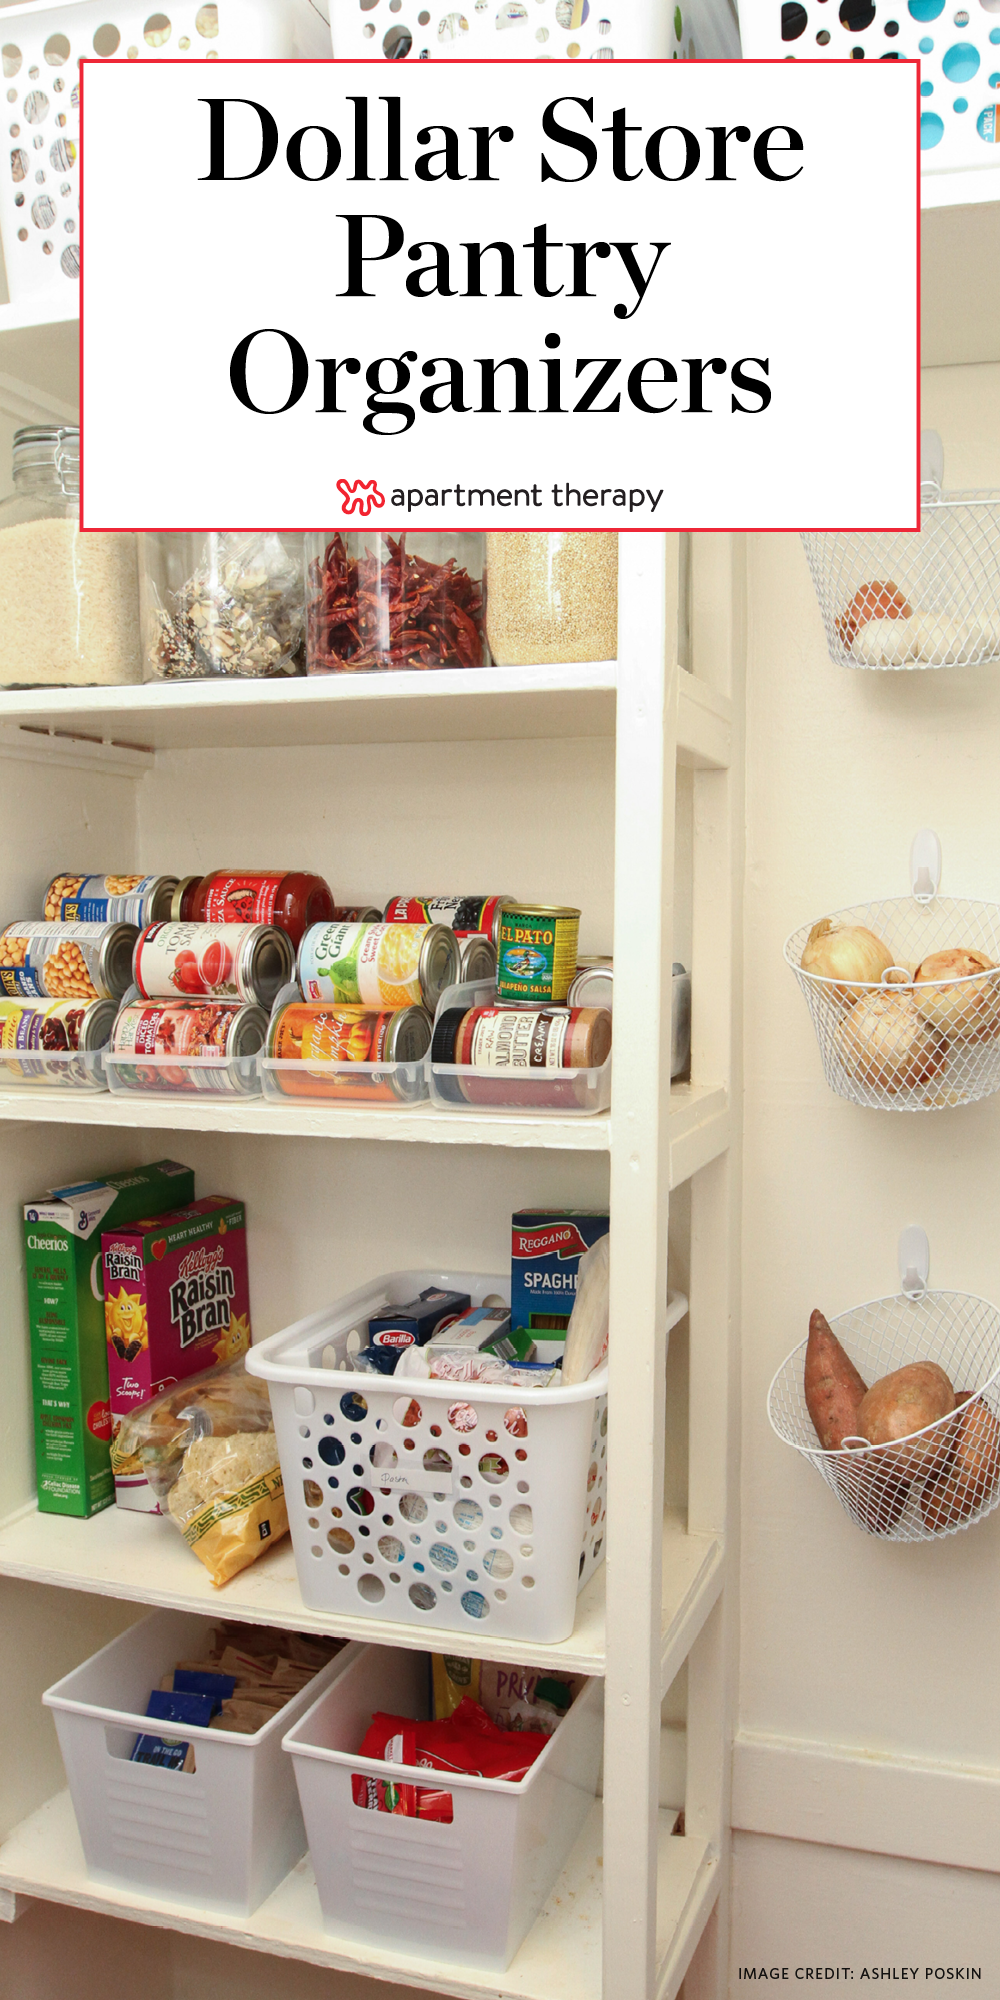 Dollar Store Pantry Organizer Tips Apartment Therapy